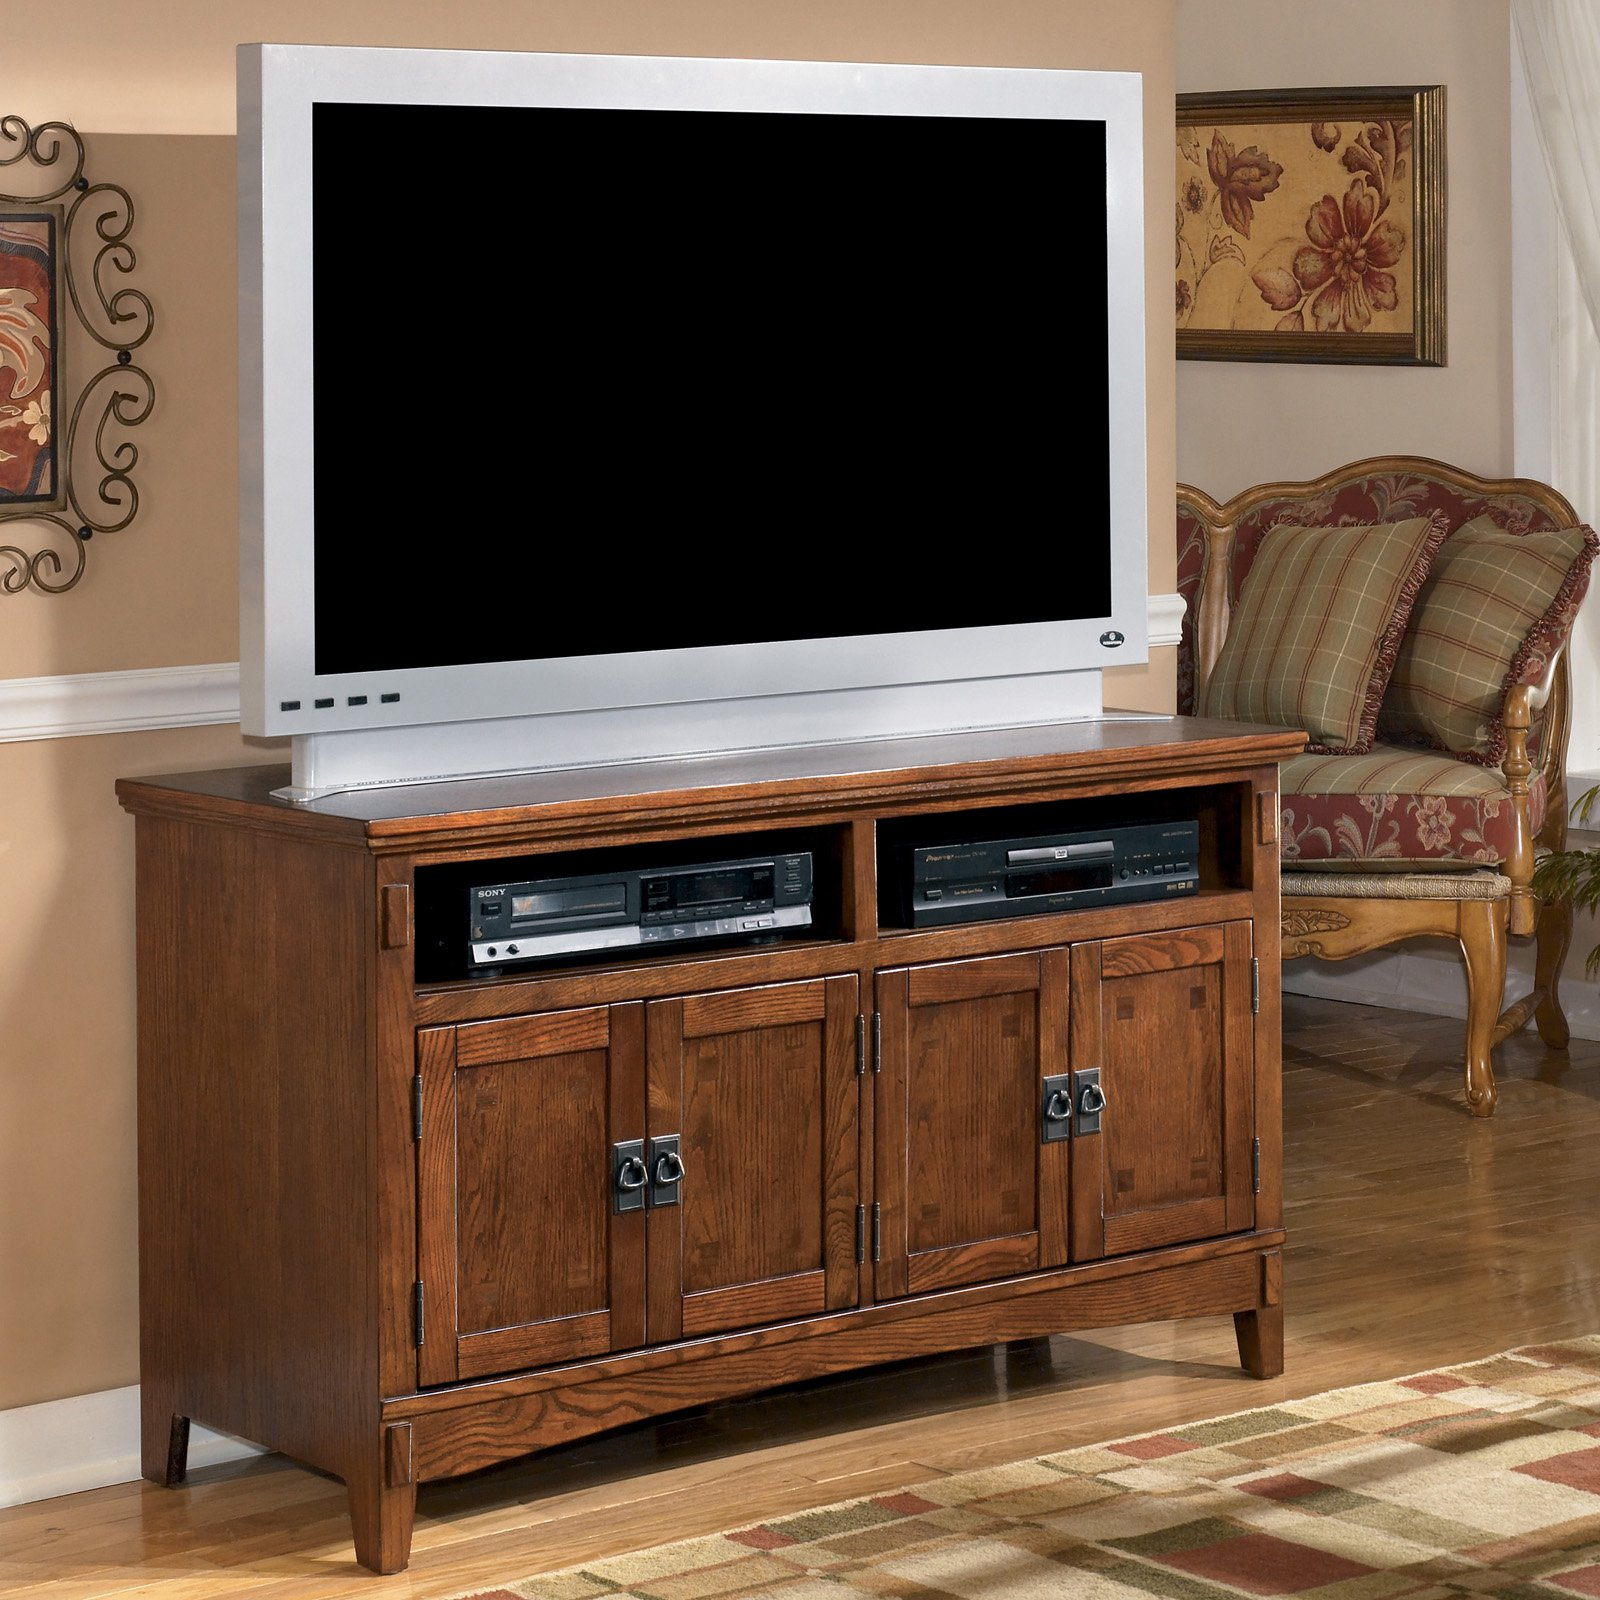 Signature Design by Ashley Cross Island TV Stand